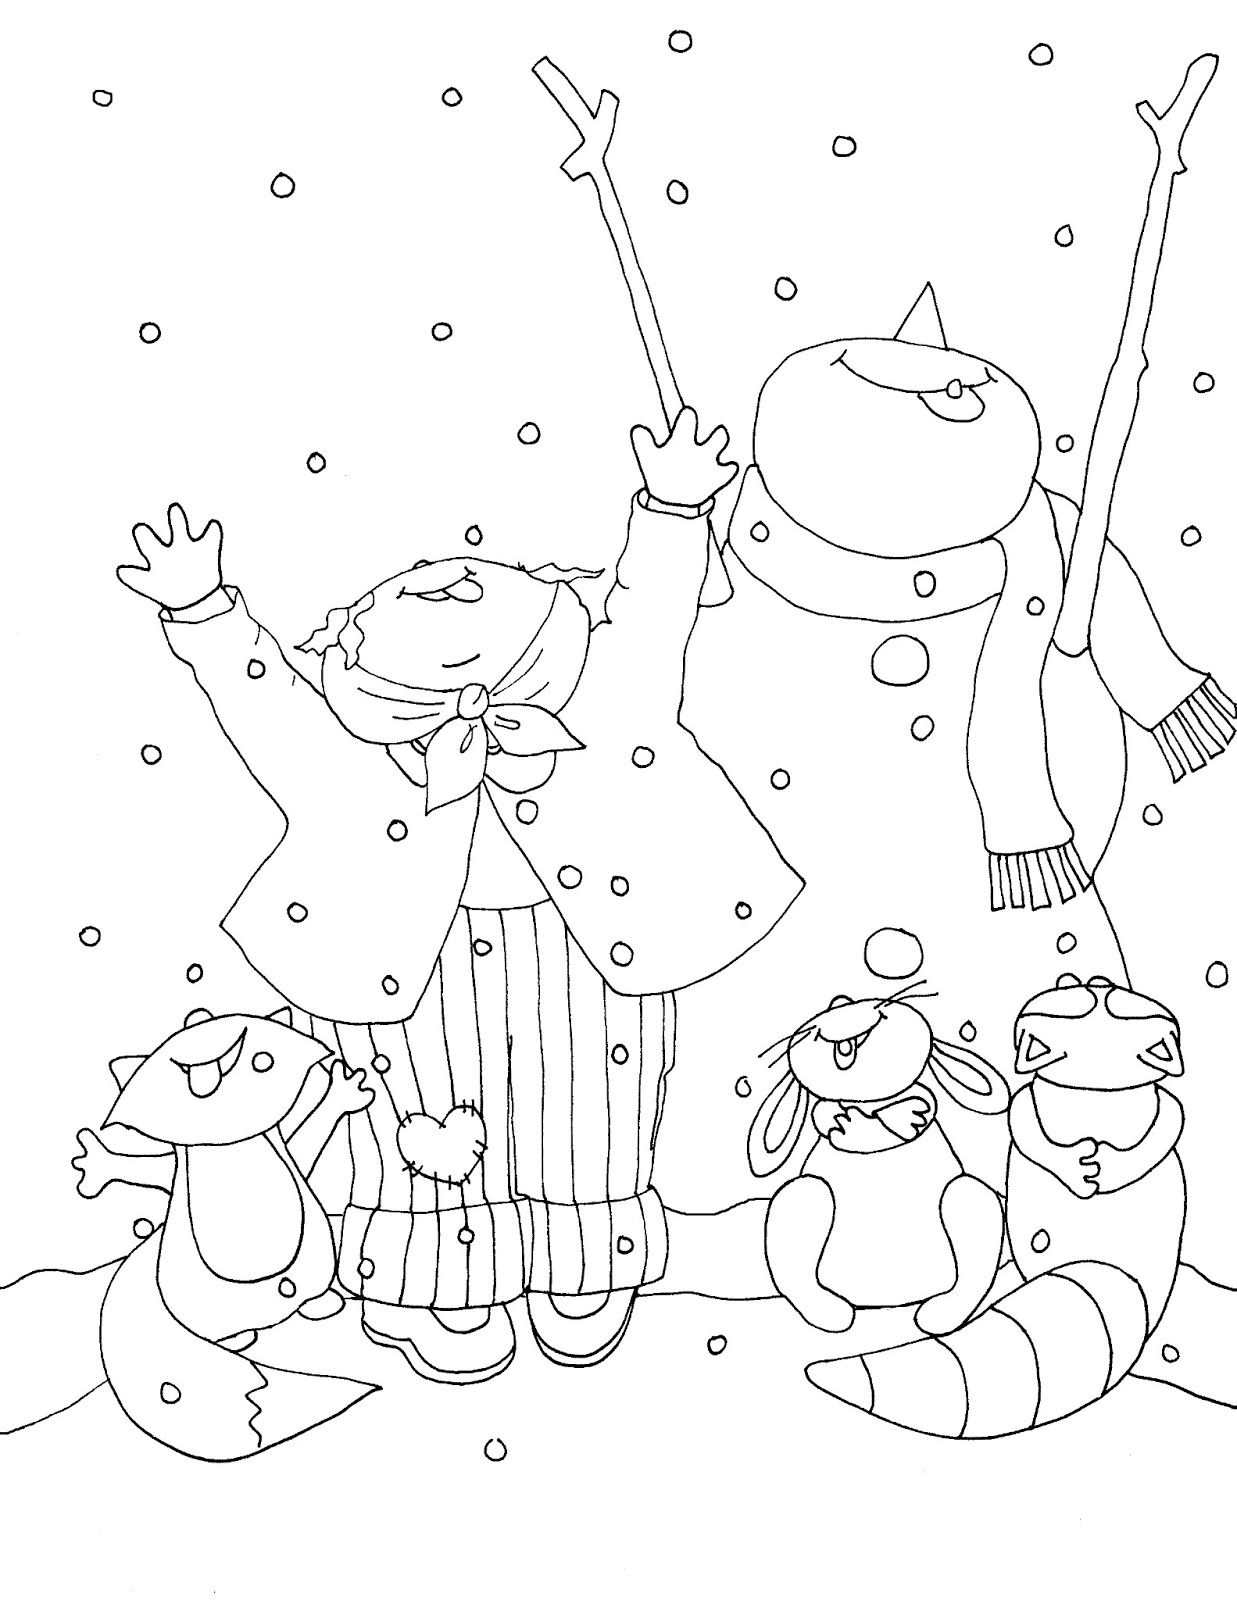 Free Dearie Dolls Digi Stamps Christmas In July Snow Fun Coloring Pages Winter Digi Stamps Christmas Coloring Pages